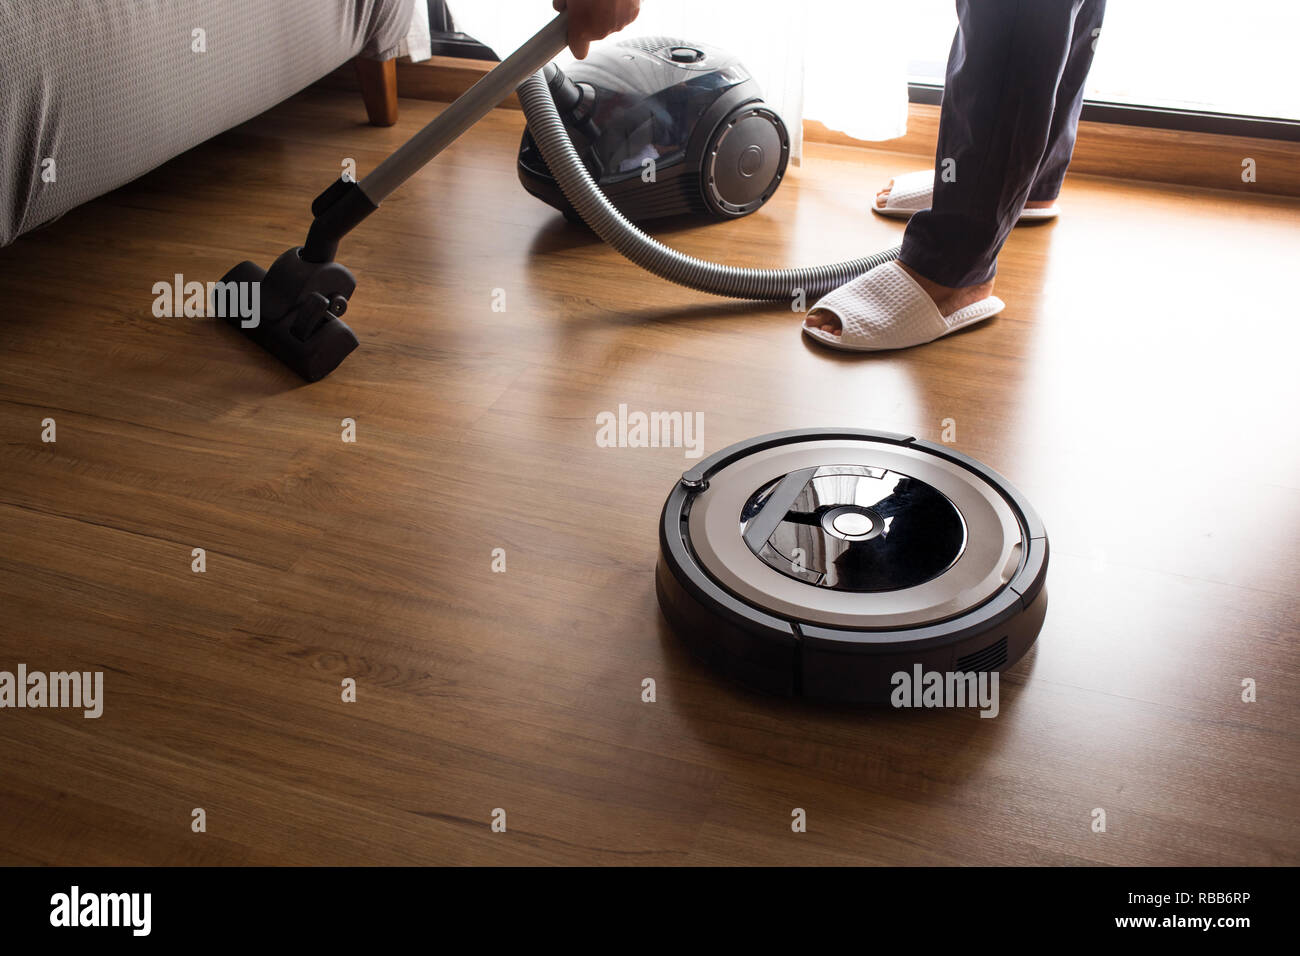 Robot vacuum cleaner with people mop the floor.Smart life concepts ideas - Stock Image